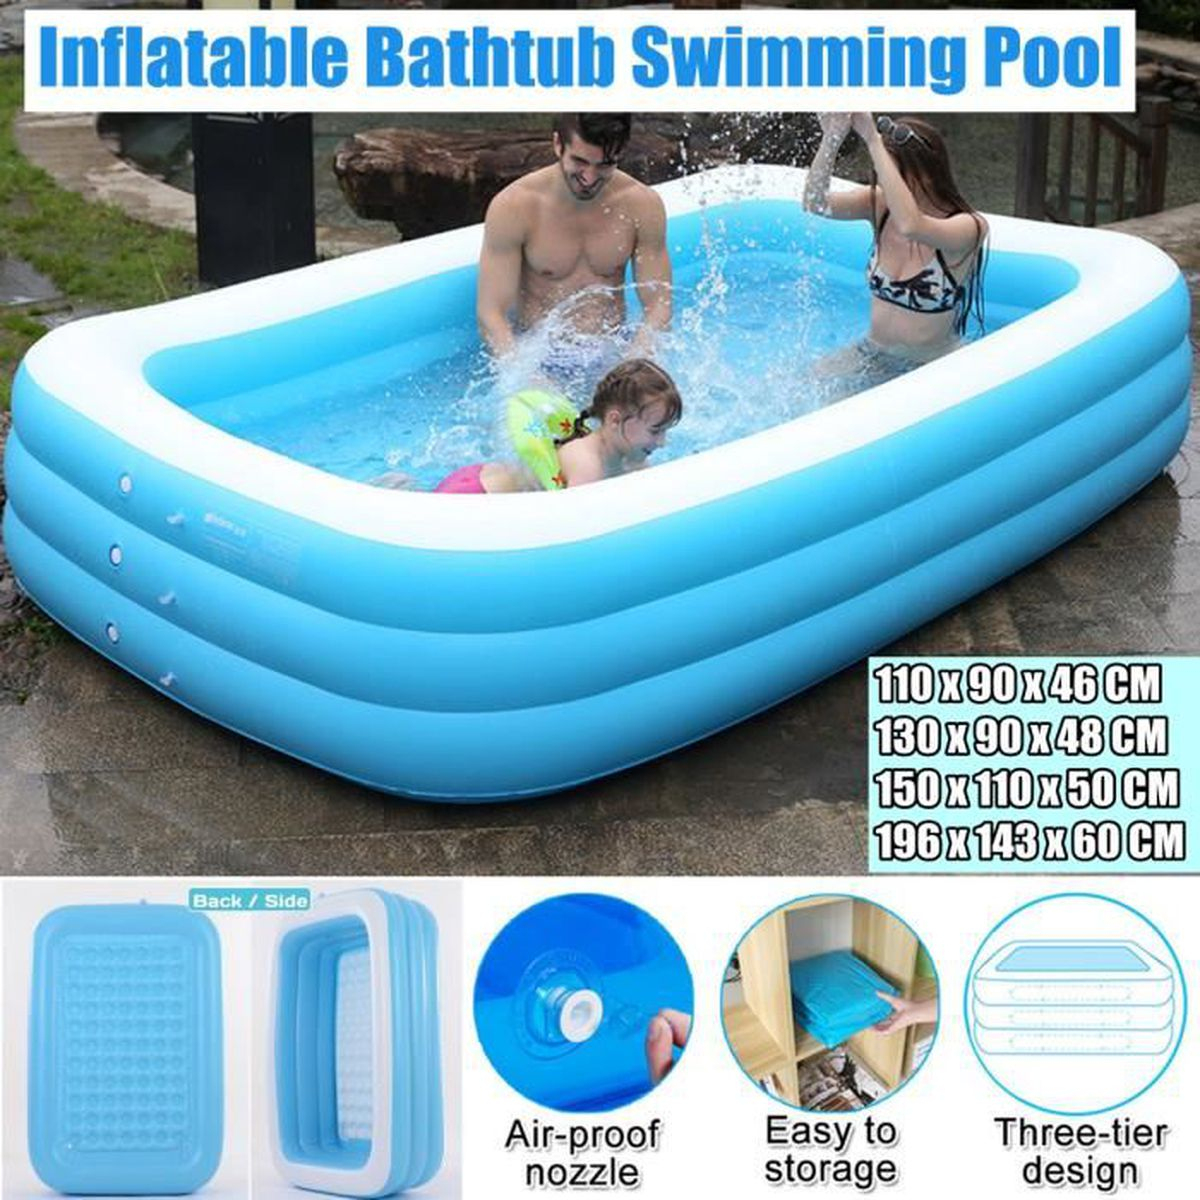 Piscine Gonflable Grande 2 Couches Solide Bulle Pour ... serapportantà Cdiscount Piscine Gonflable